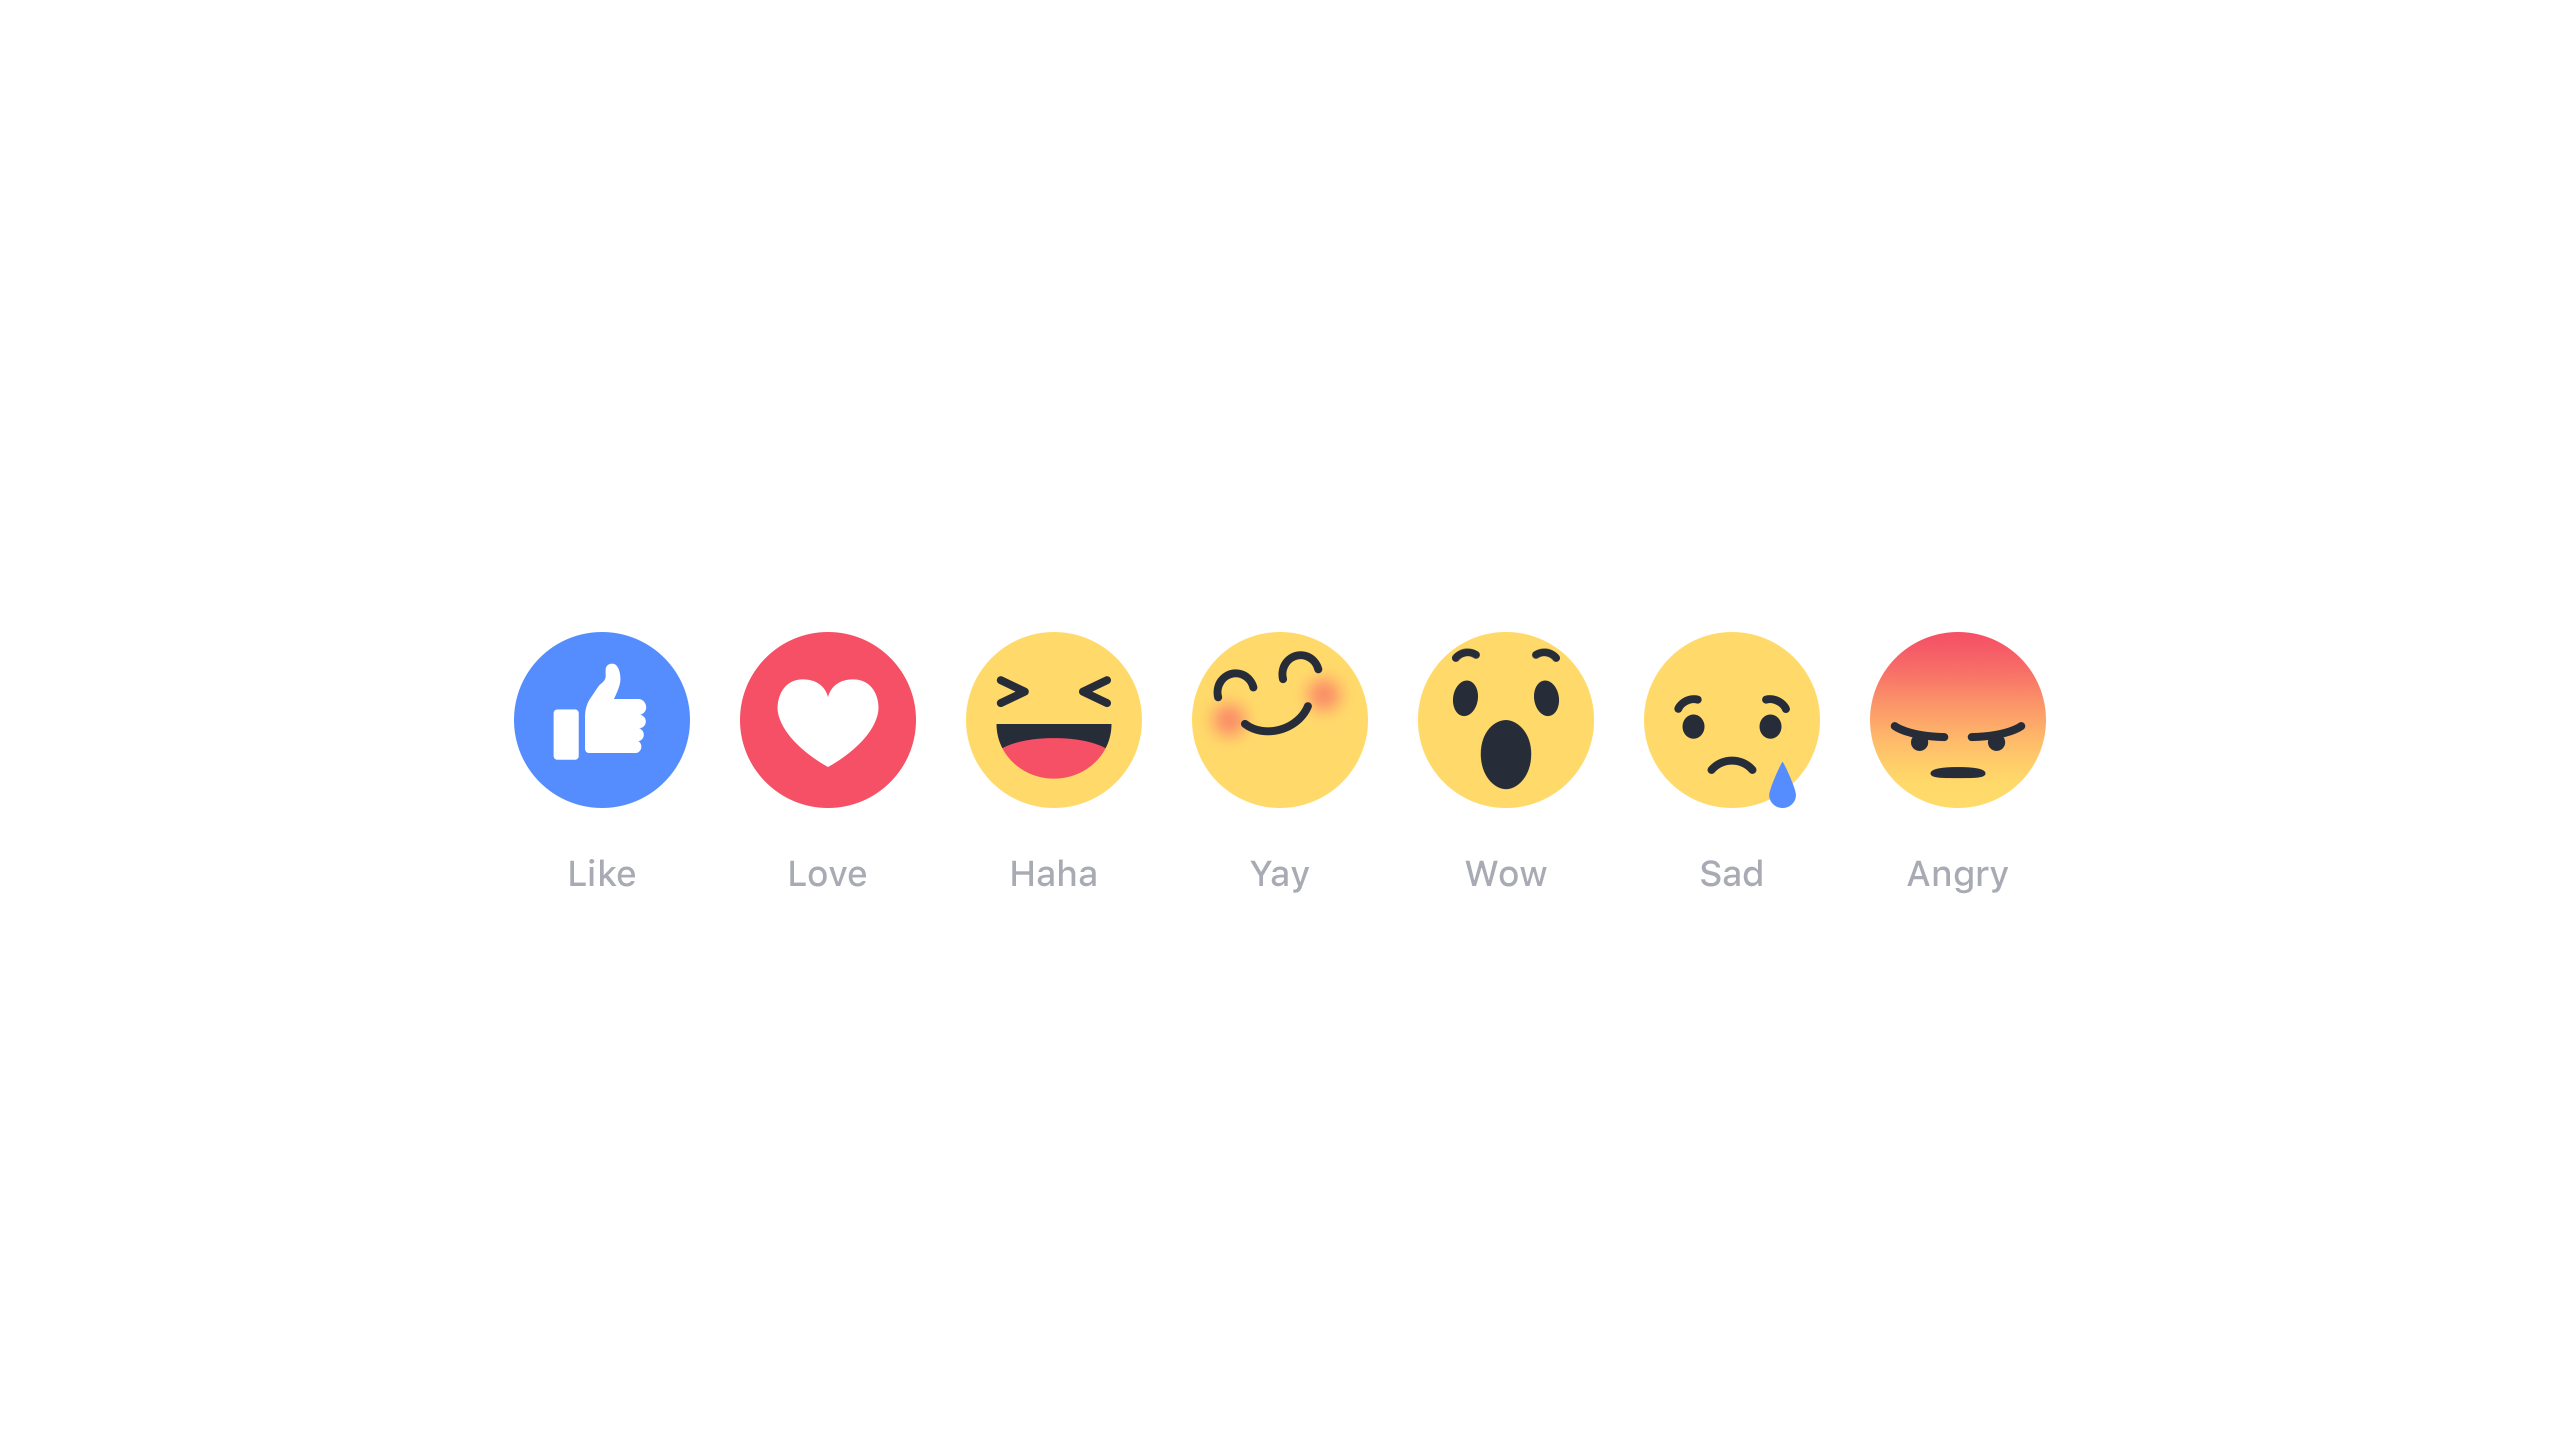 Facebook's new Reaction feature builds popular emoji options